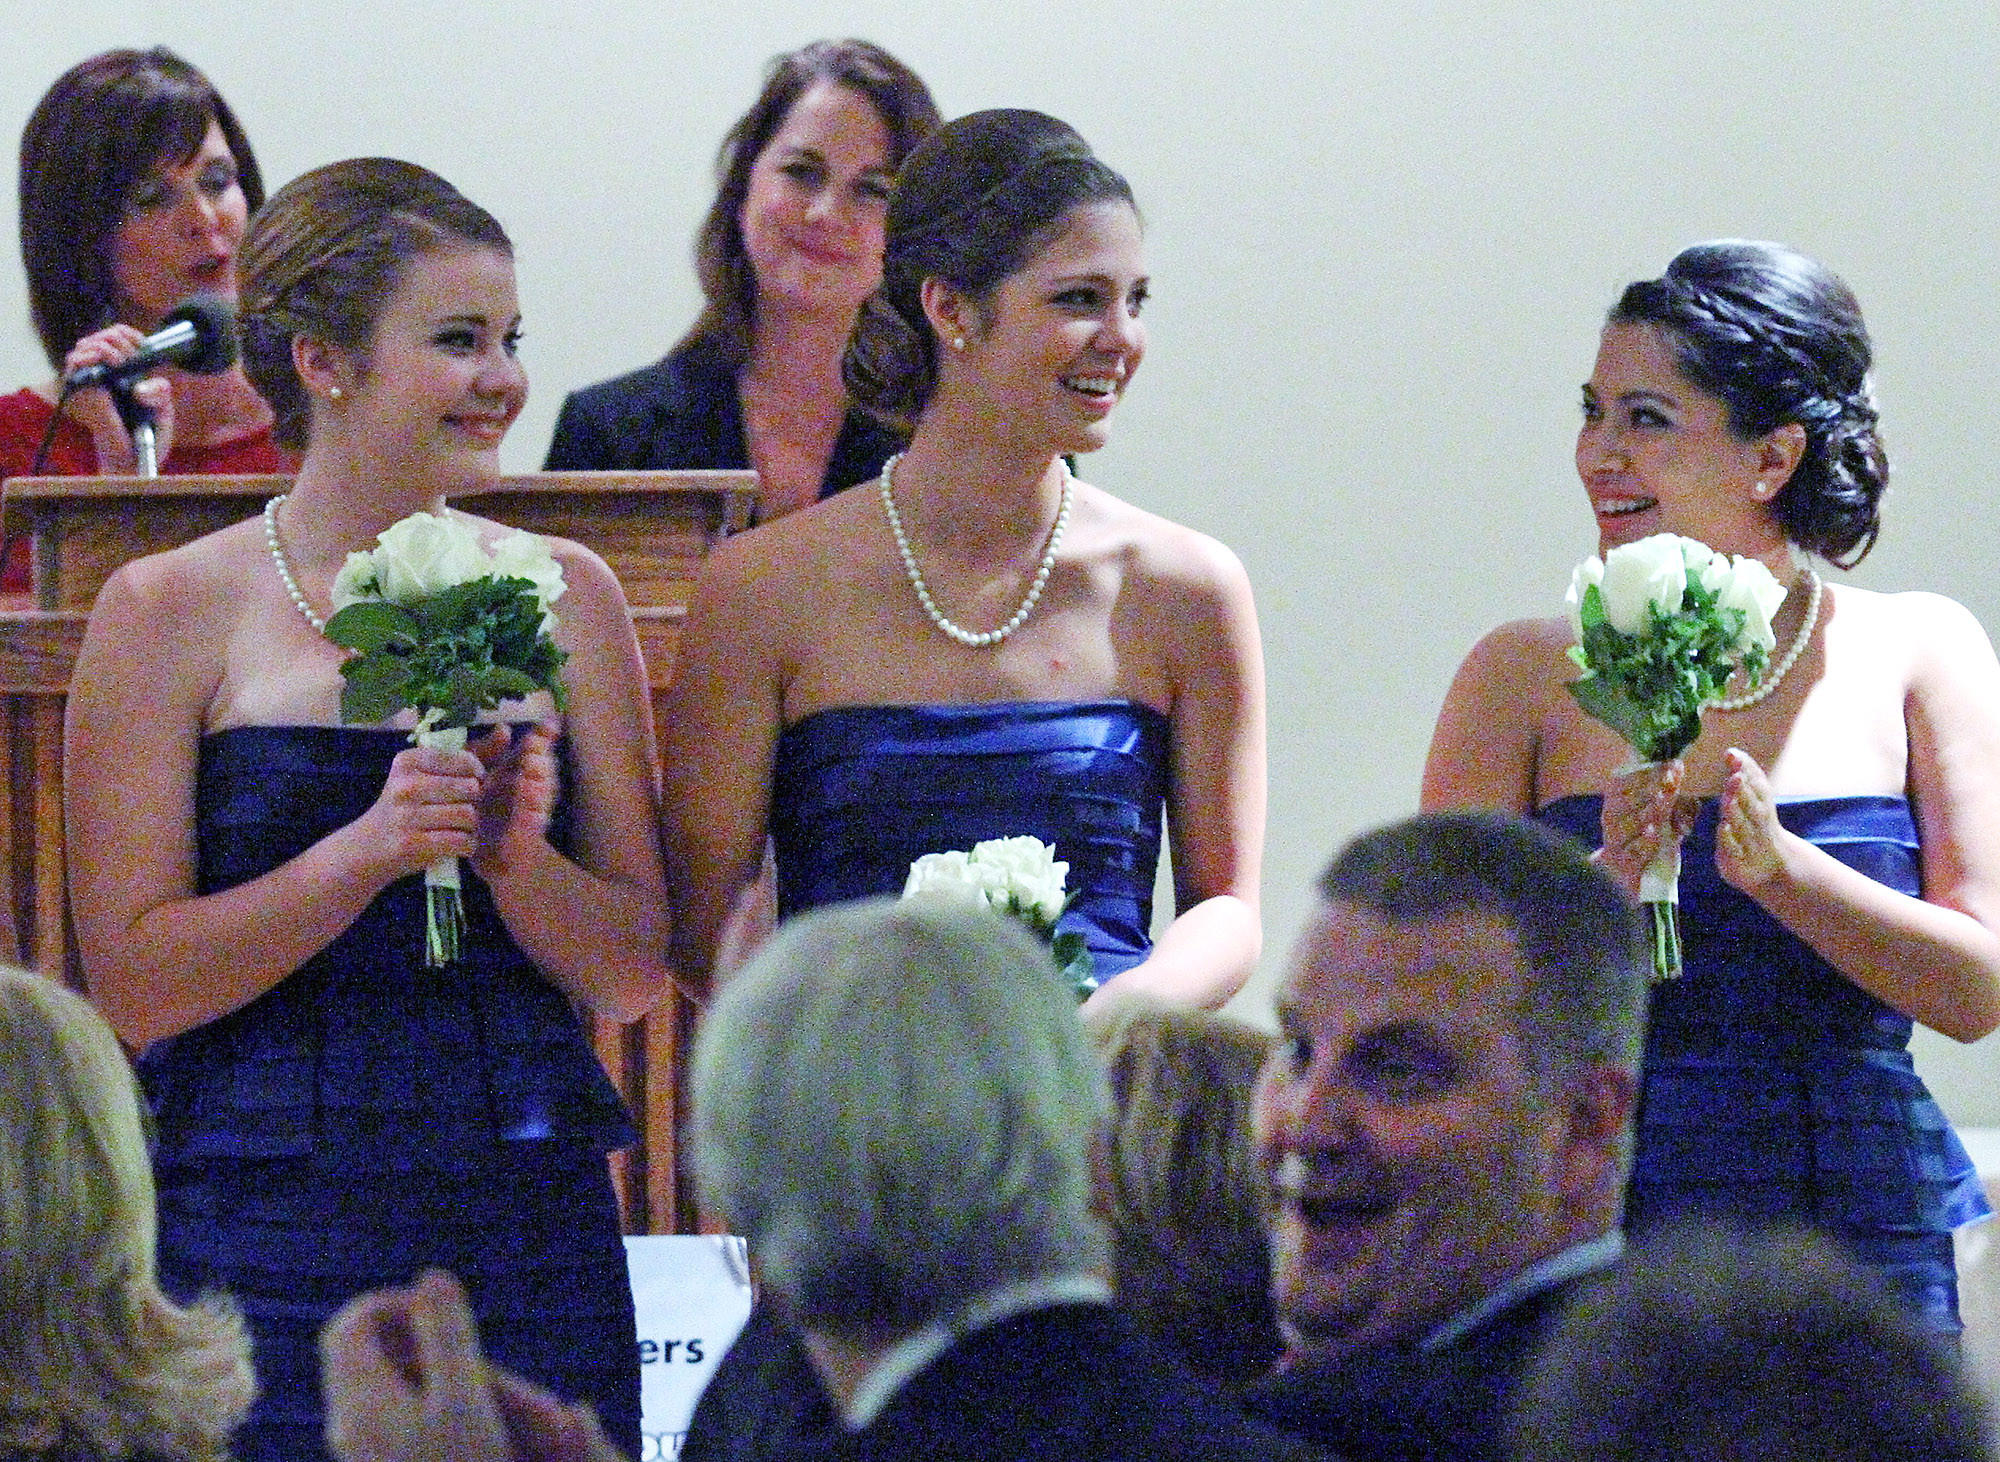 Kaitlin Powers, center, is applauded by Caroline Kenney and Sabine Puglia after she is named Miss La Cañada Flintridge 2014 at the 102nd Installation and Awards Gala for the La Cañada Flintridge Chamber of Commerce and Community Association at the La Cañada Flintridge Country Club on Thursday, January 16, 2014. The Announcement and Coronation of Miss La Cañada Flintridge 2014 and Her Royal Court also took place.